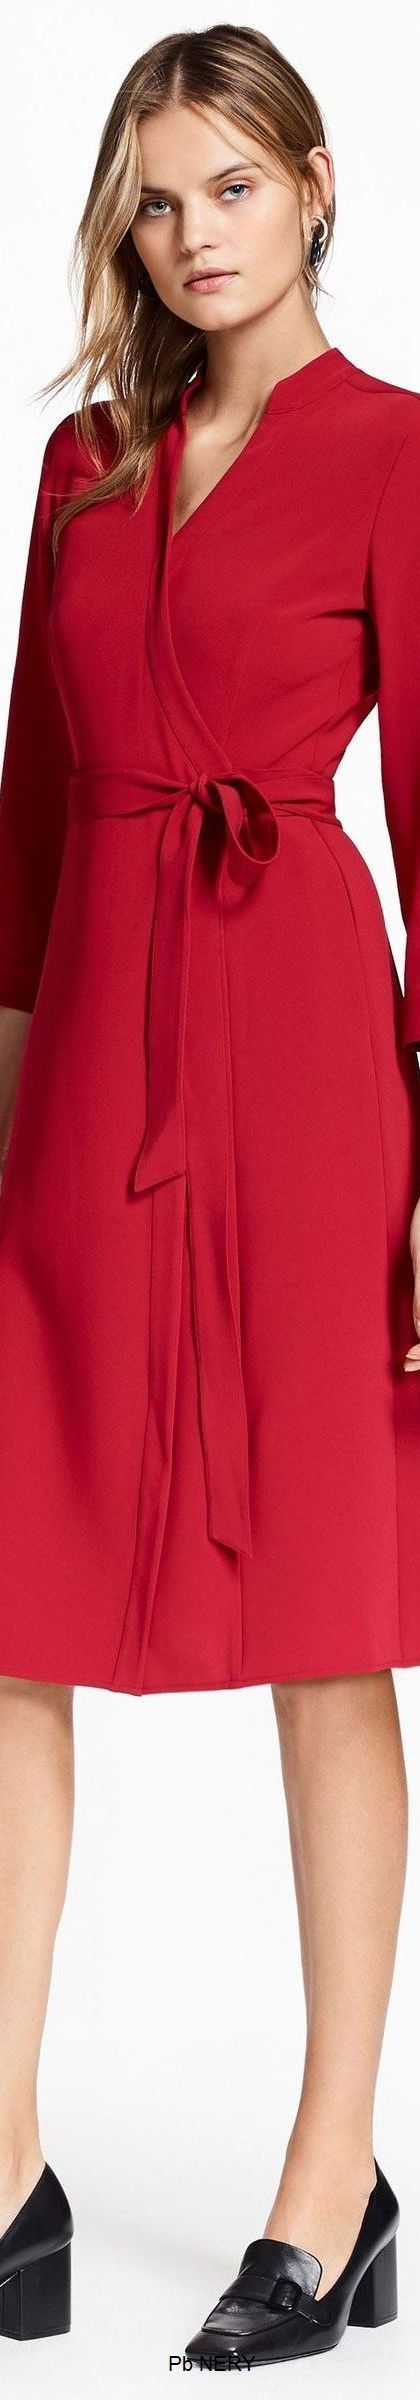 @roressclothes clothing ideas #women fashion red dress Brooks Brothers Pre-Fall 2017: